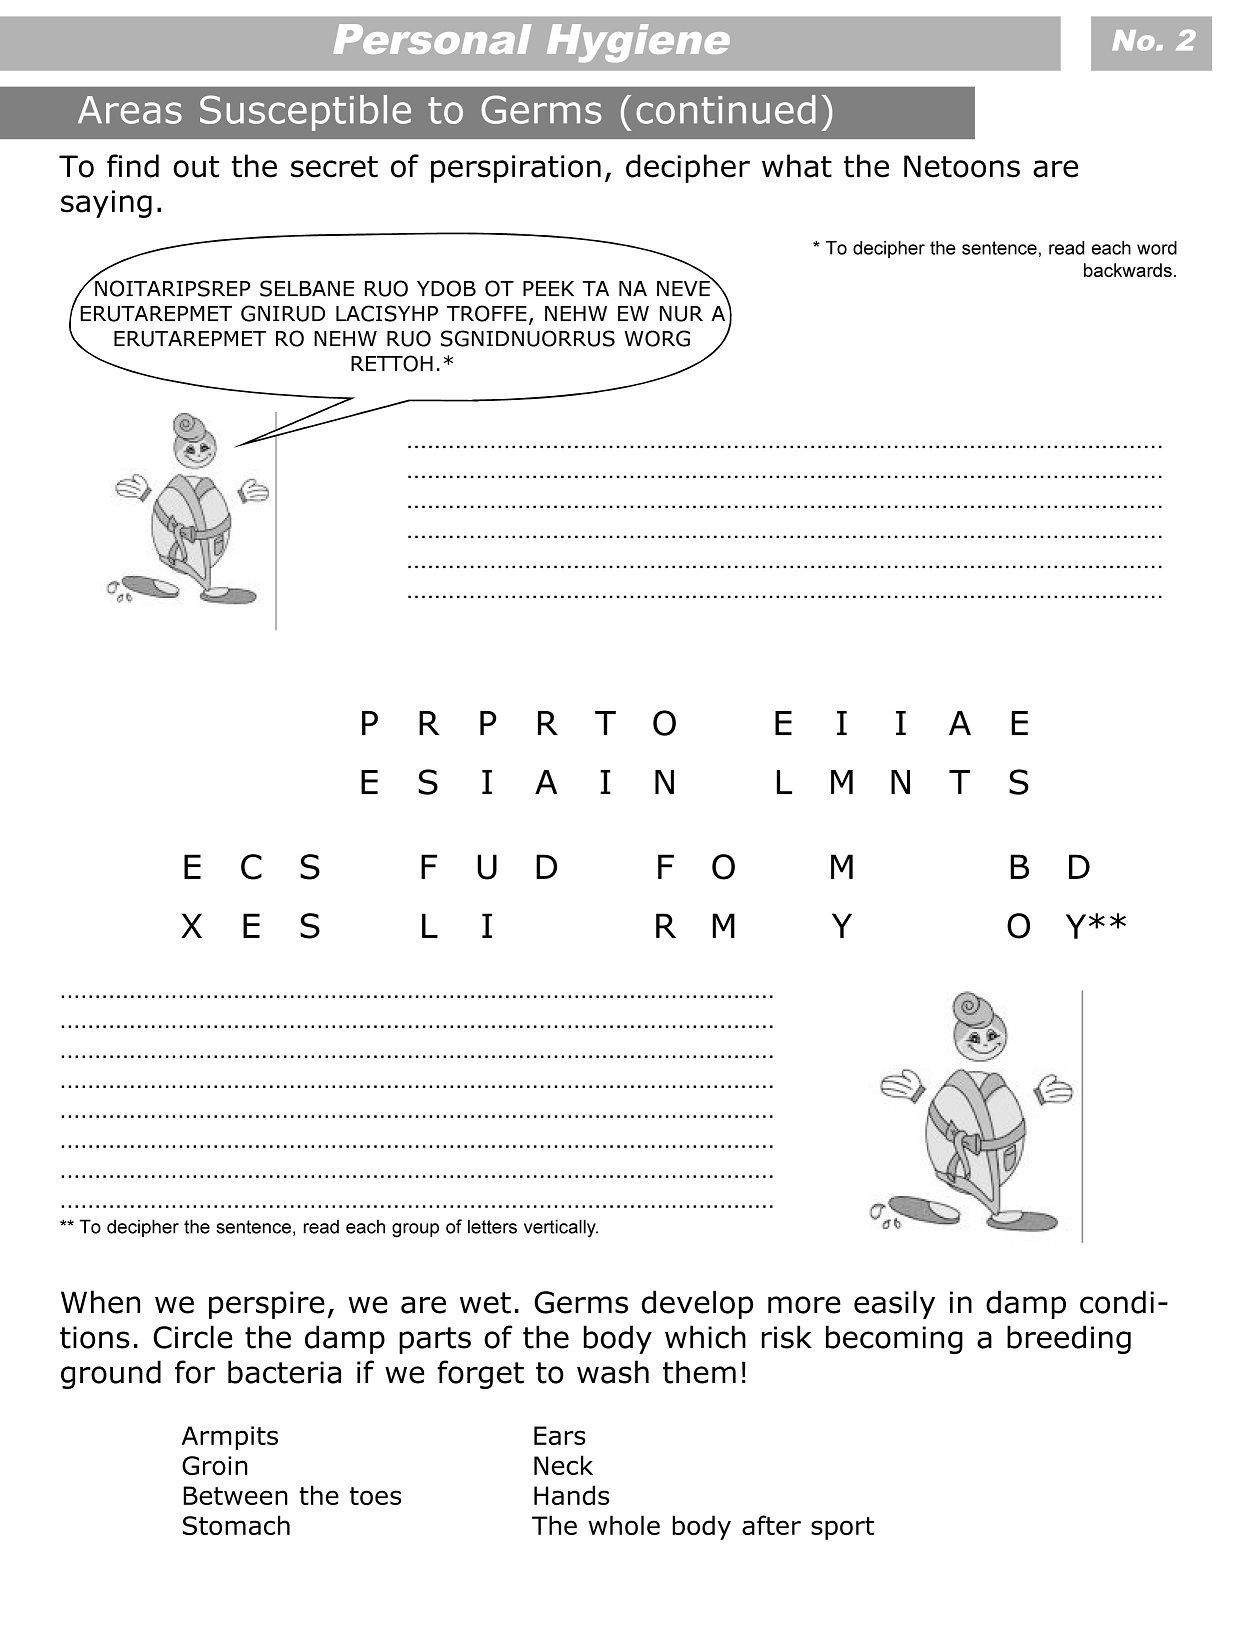 Middle School Health Worksheets Personal Hygiene Worksheets for Kids Level 3 2